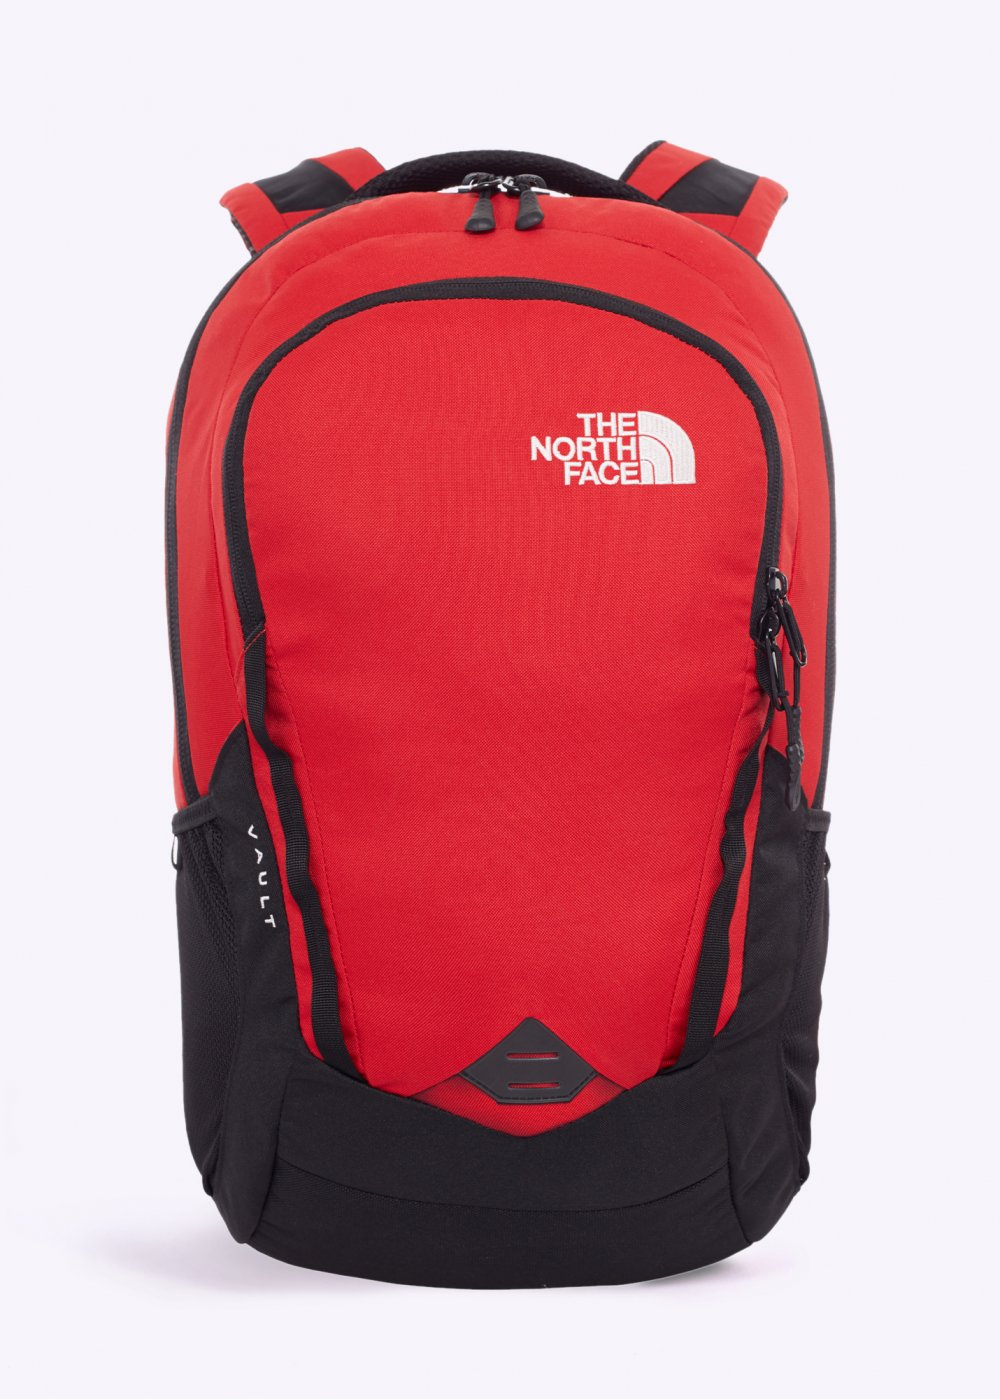 630222954a9a The North Face Vault Backpack - Black / TNF Red